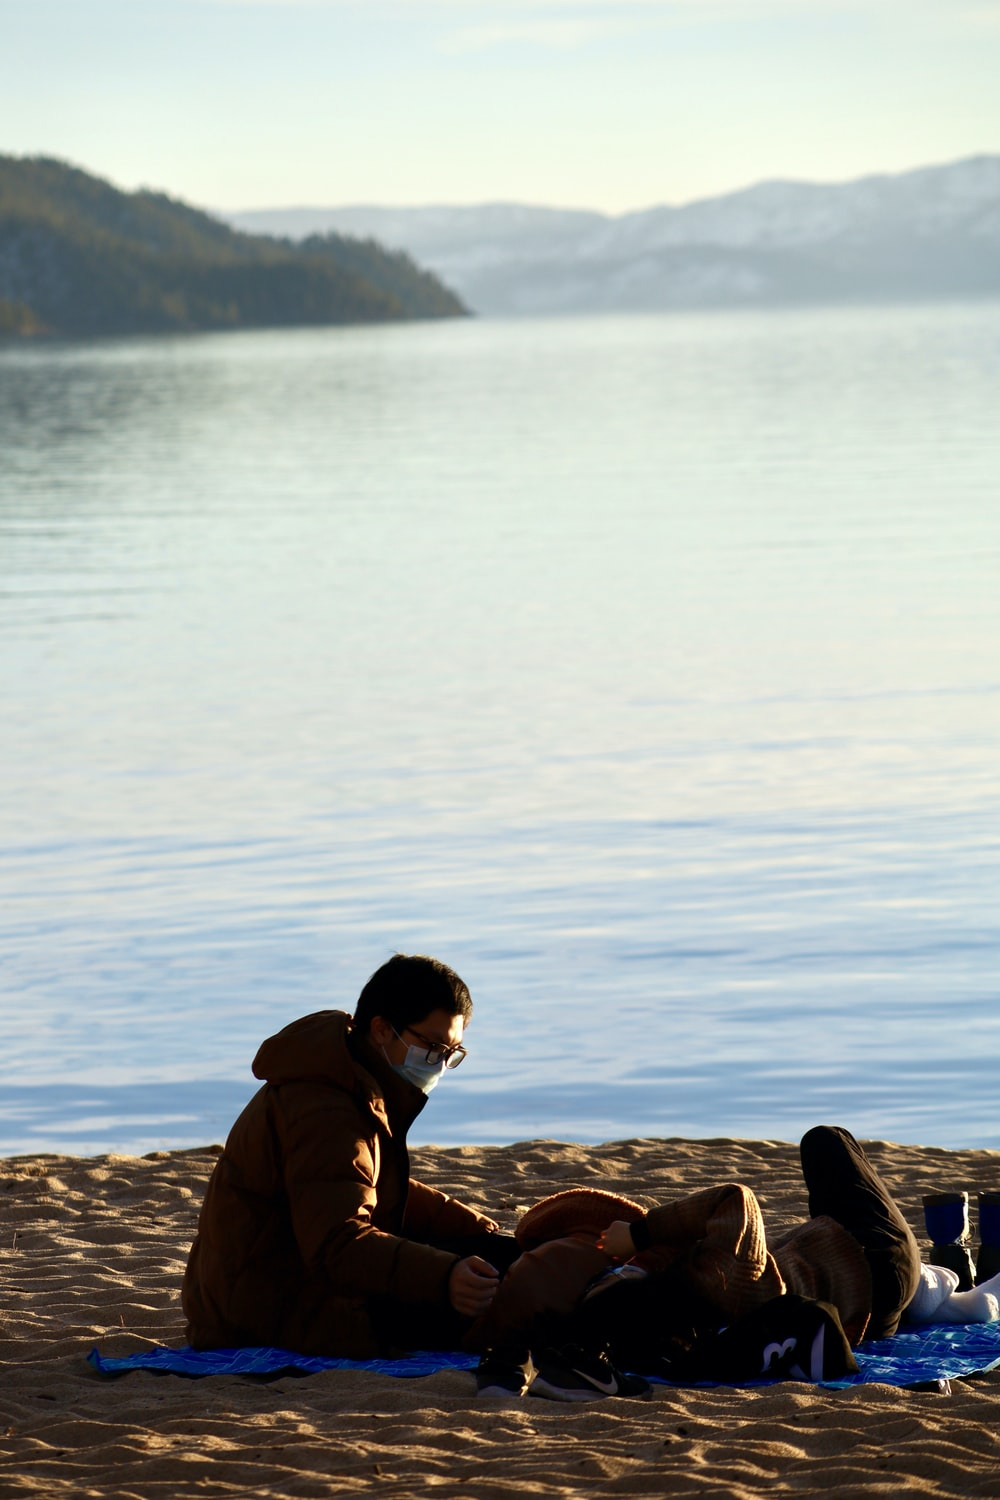 man in brown jacket sitting on rock near body of water during daytime